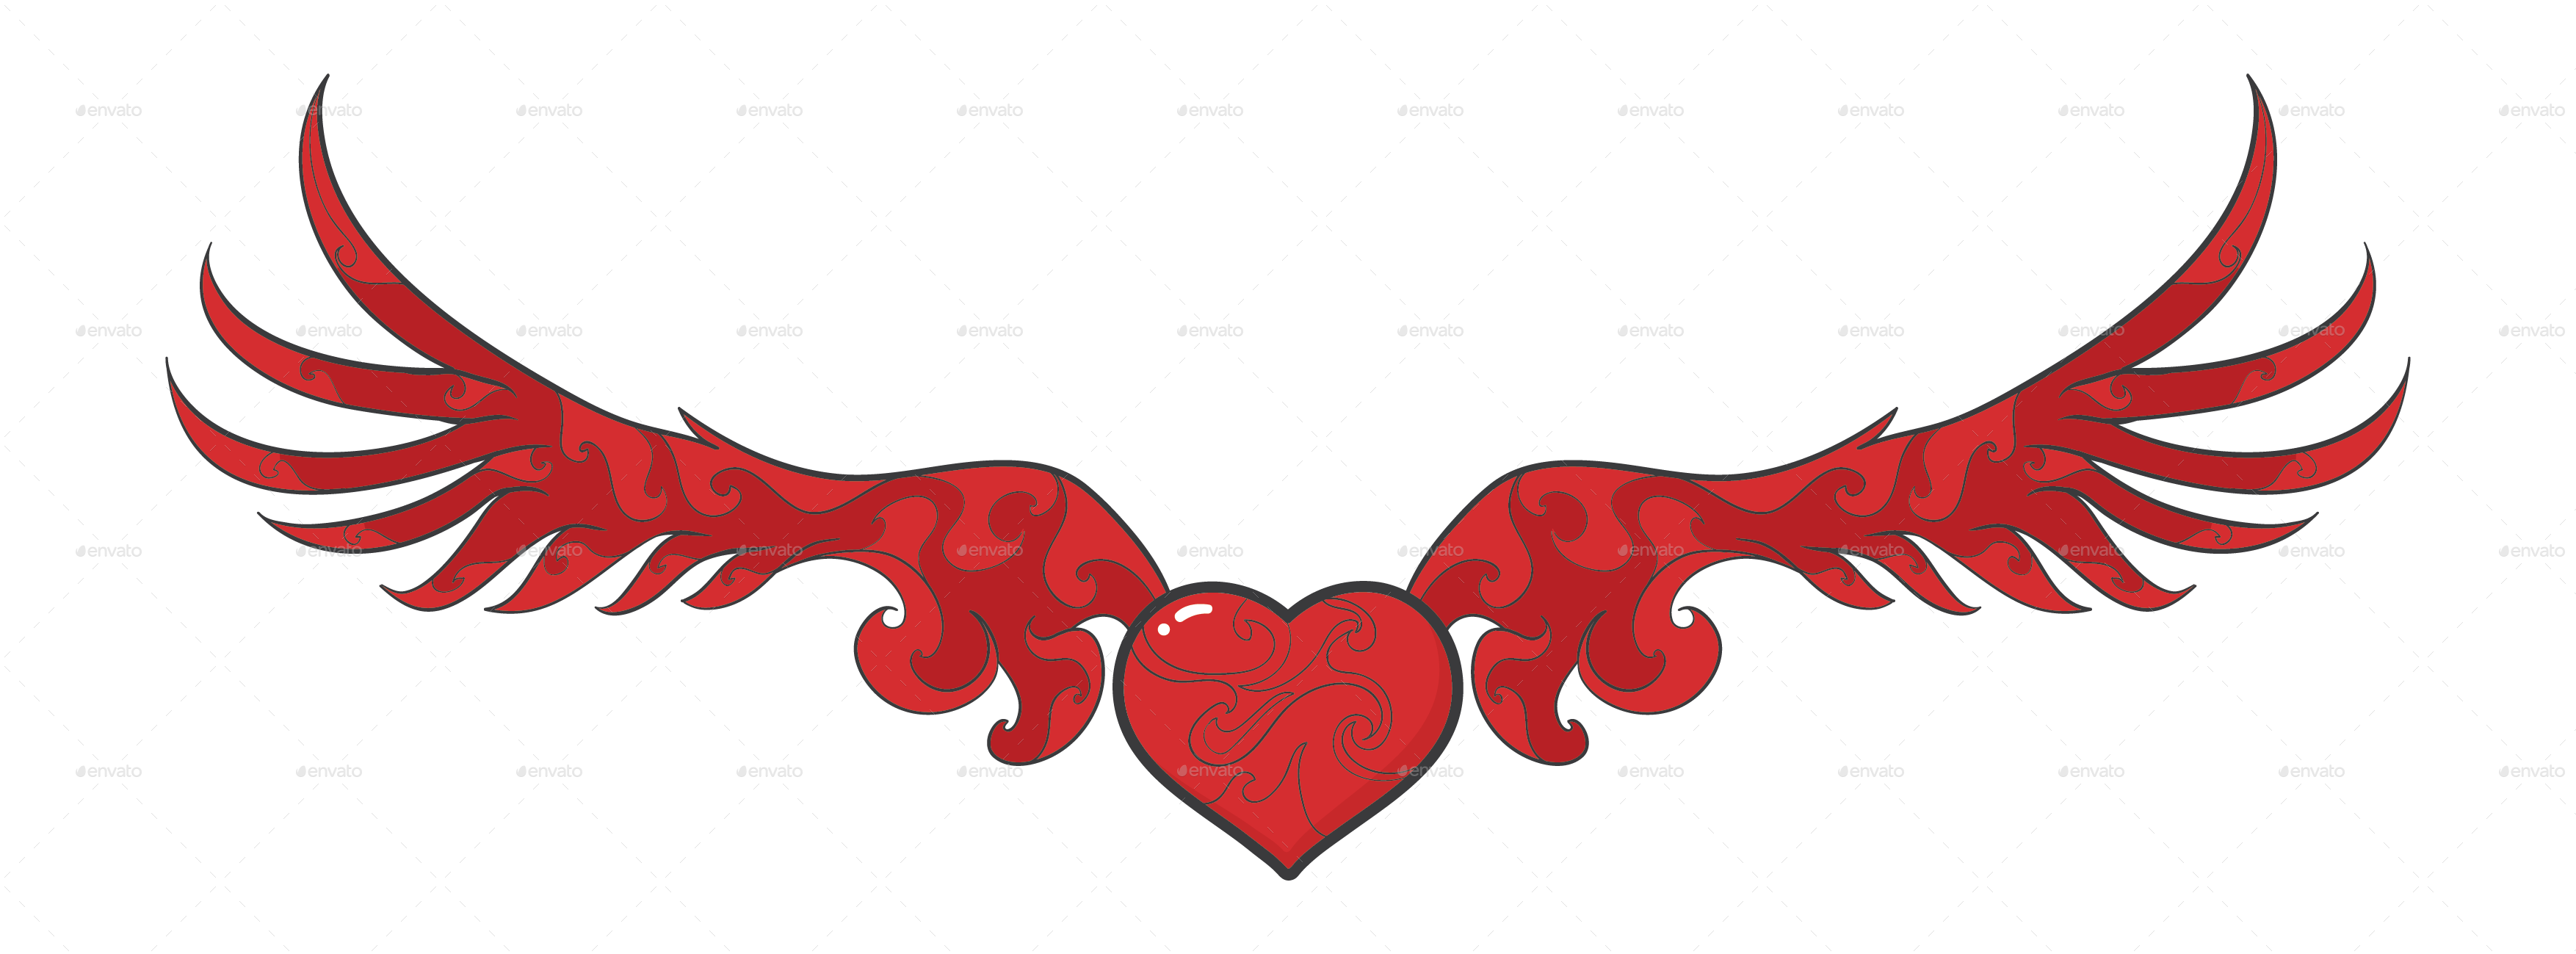 Wings with heart clipart svg freeuse stock 14 Wings of Love by loetoeng | GraphicRiver svg freeuse stock